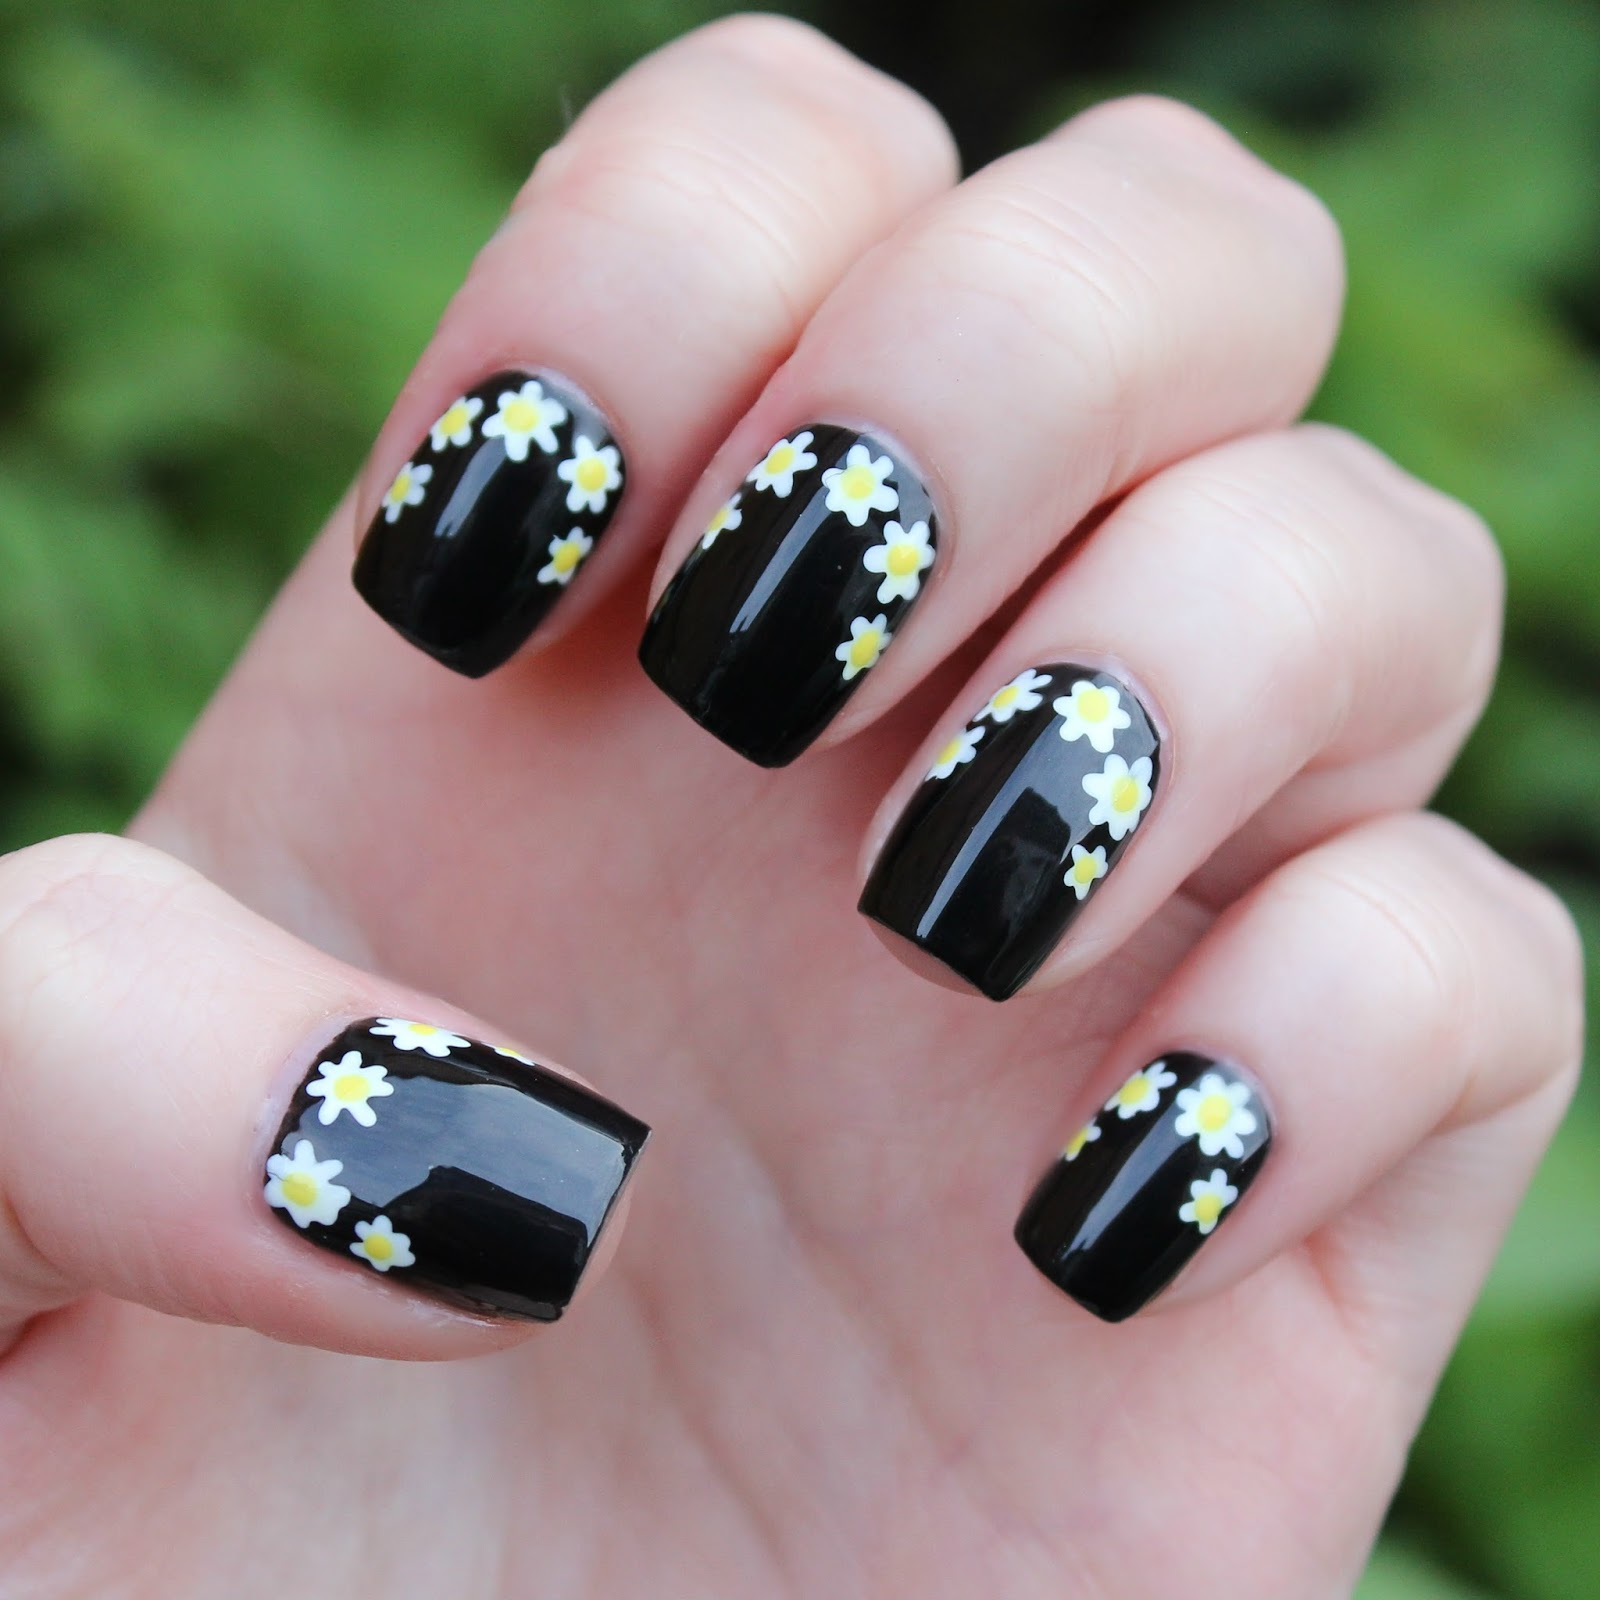 Dahlia Nails: Nails In Bloom